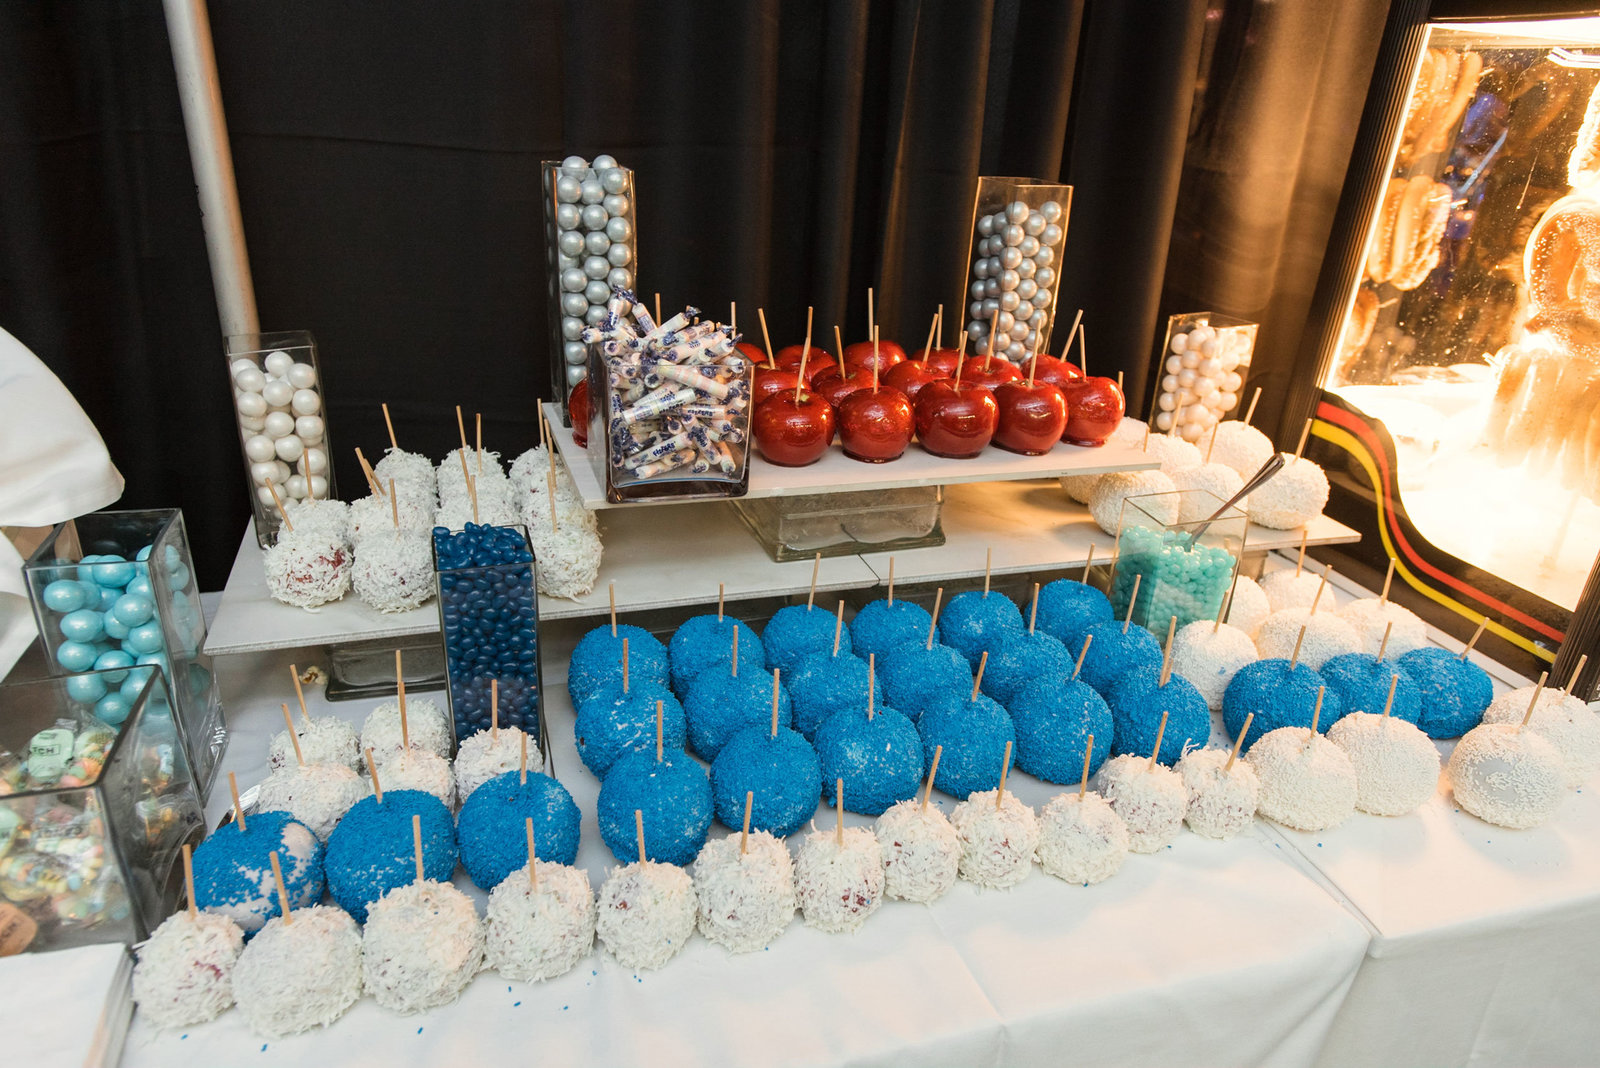 Candy apple dessert table at Cradle of Aviation